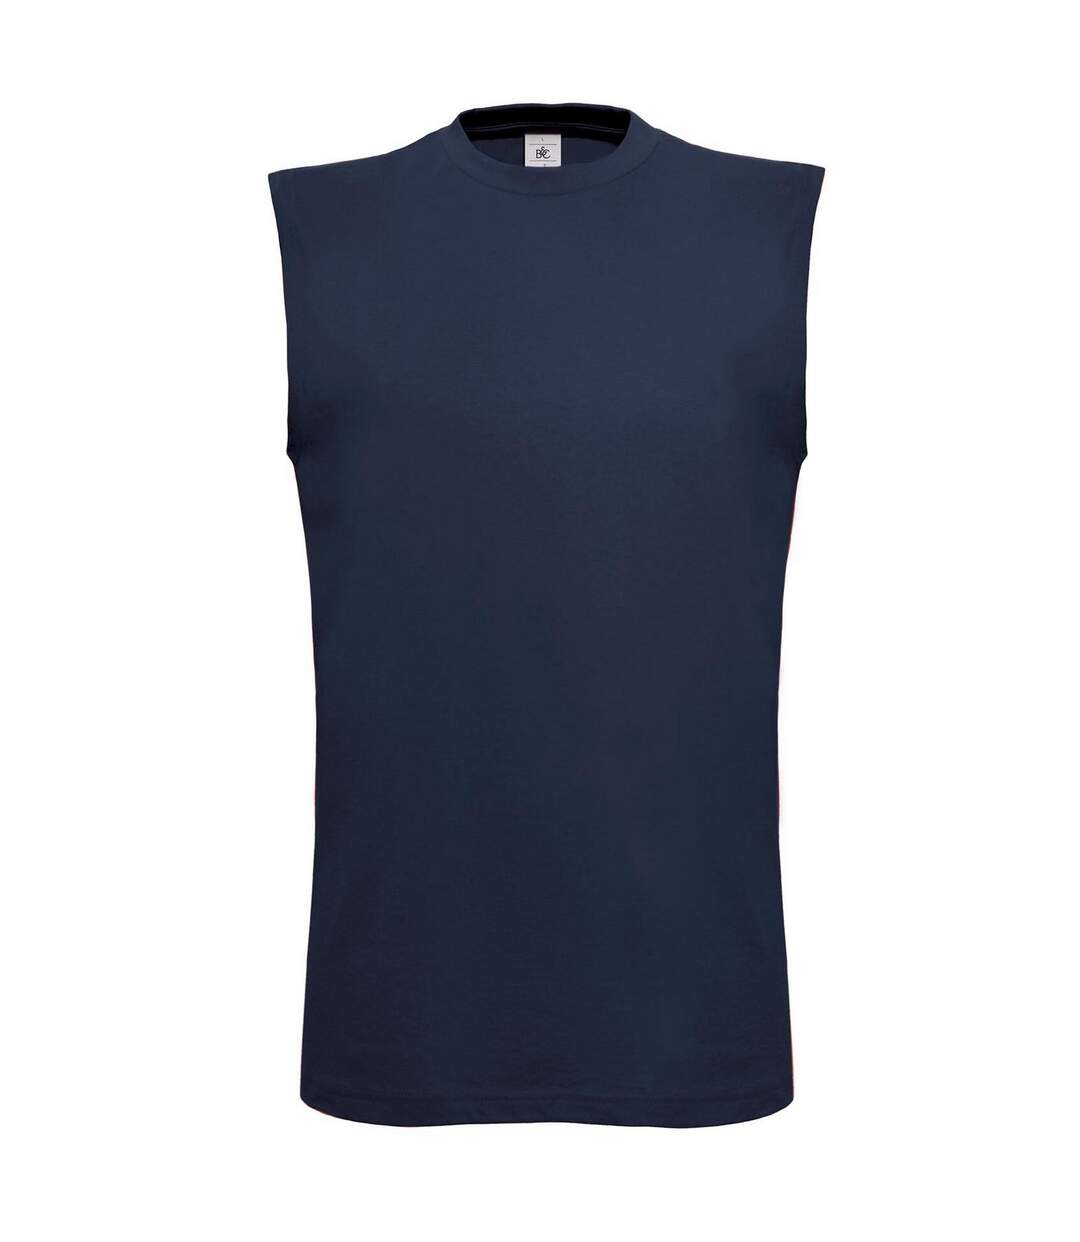 B&C Mens Exact Move Athletic Sleeveless Sports Vest Top (Navy) - UTRW3502